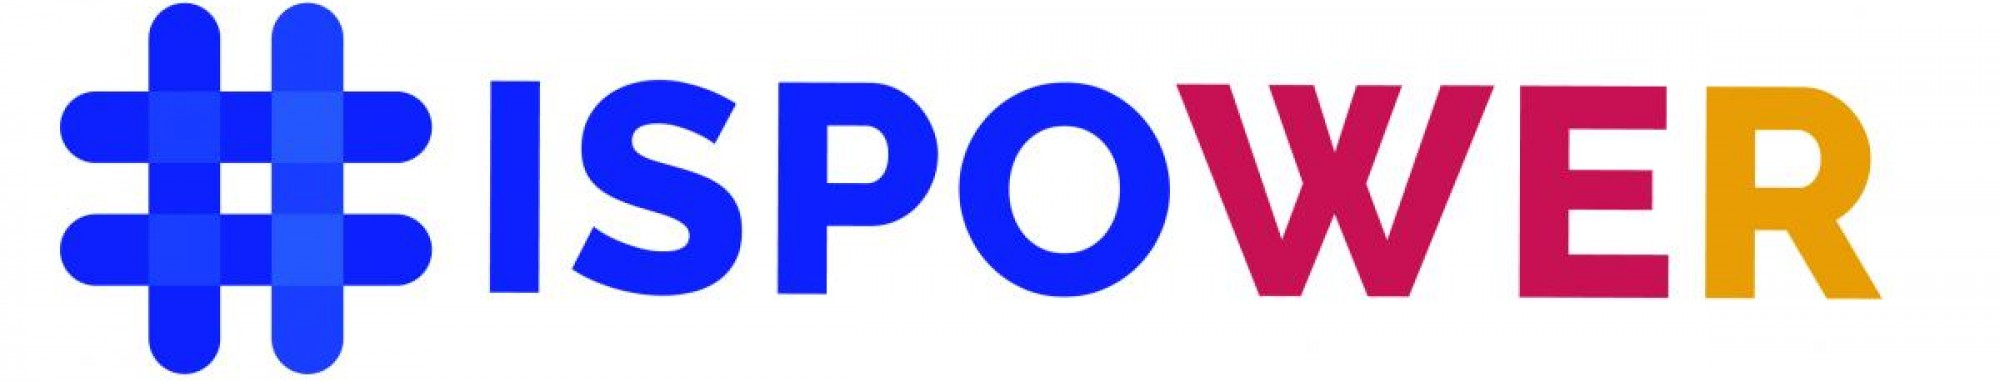 cropped-ispower_logo-03.jpg